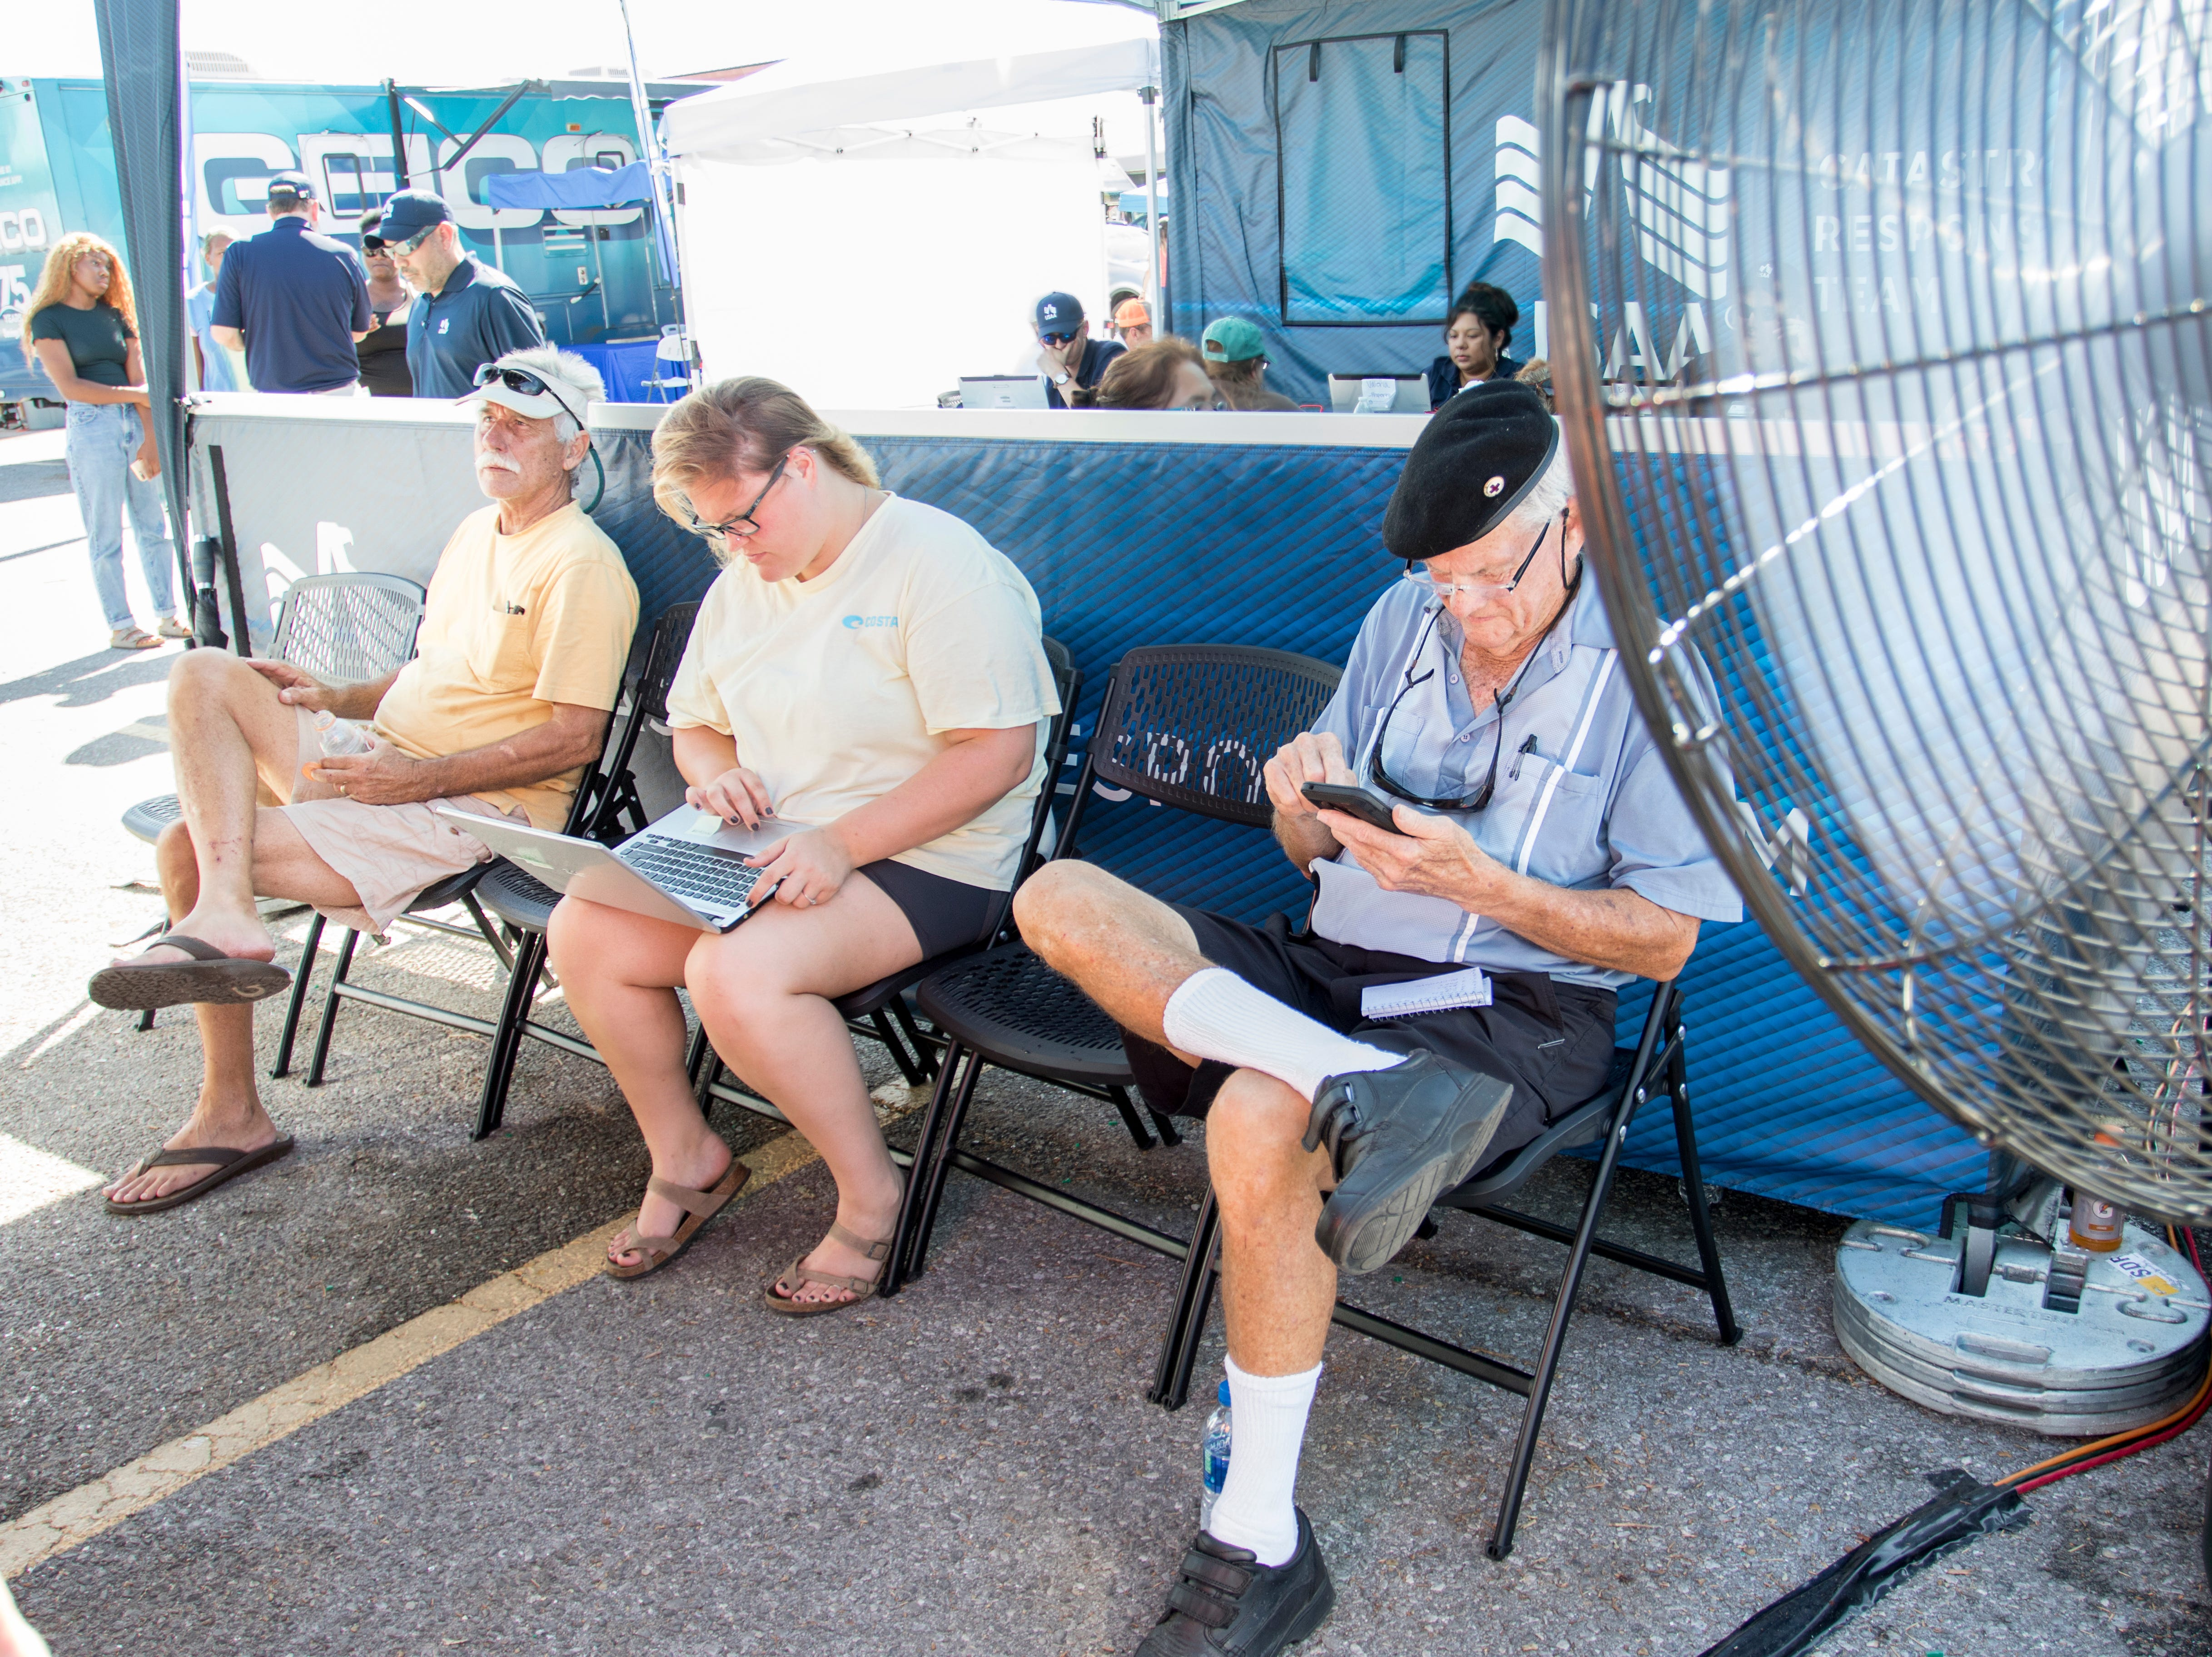 Sitting in the breeze of a fan, Courtney Galbreath takes advantage of wifi access while Jack Ball, left, and Jay Currier wait to file claims with USAA at the insurance village that as been set up on West 23rd Street to service clients affected by Hurricane Michael in Panama City, Florida on Wednesday, October 17, 2018.